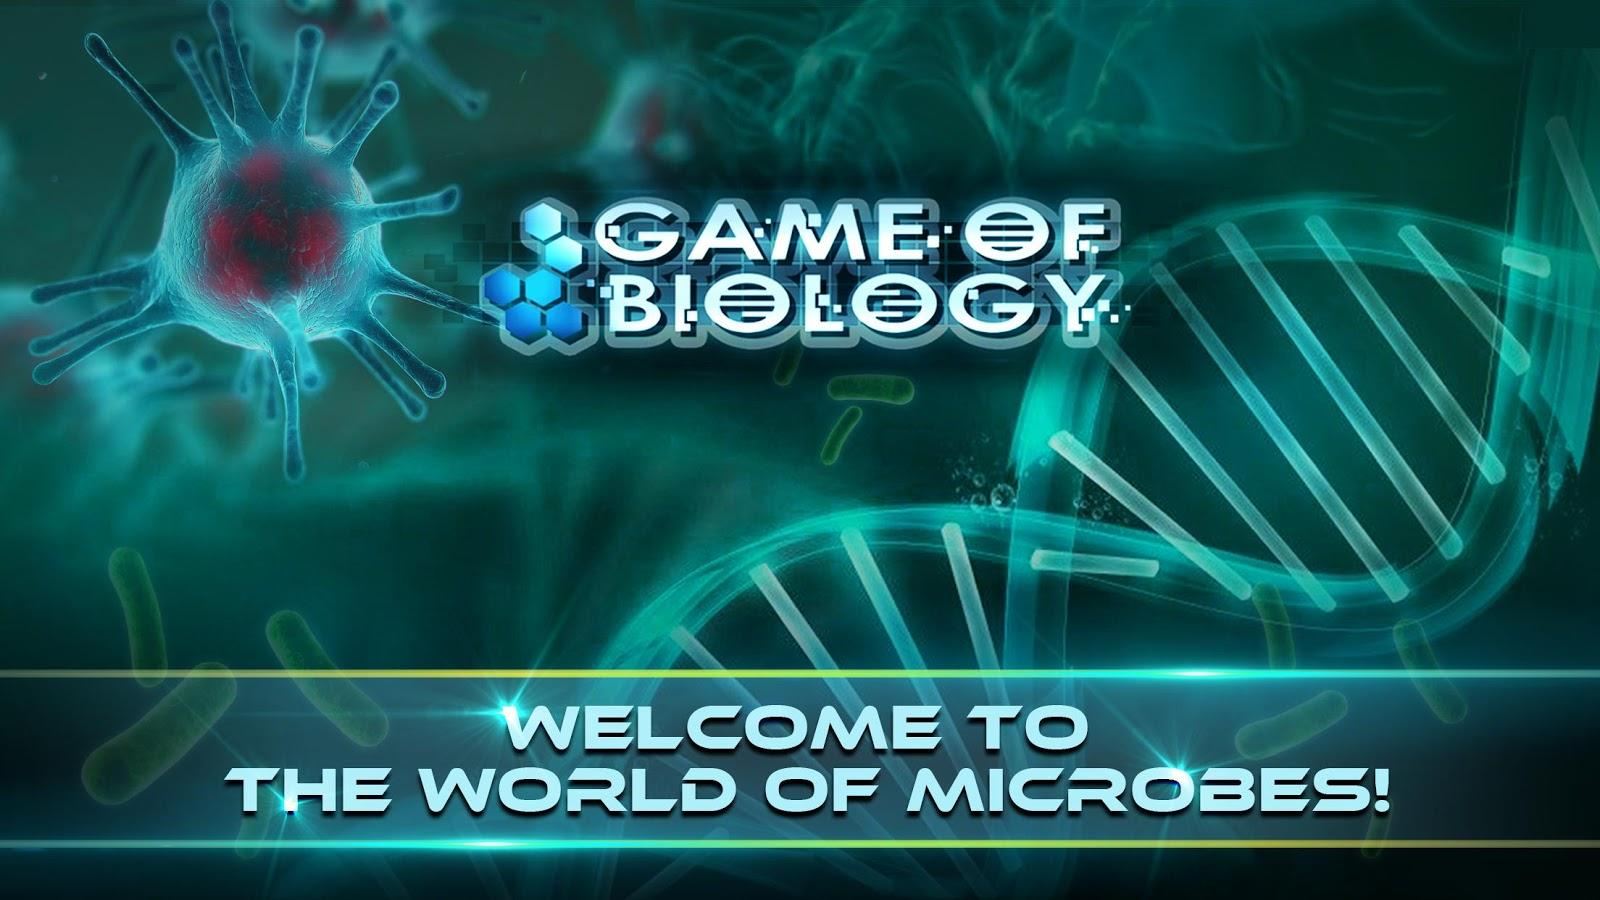 1-Game of Biology